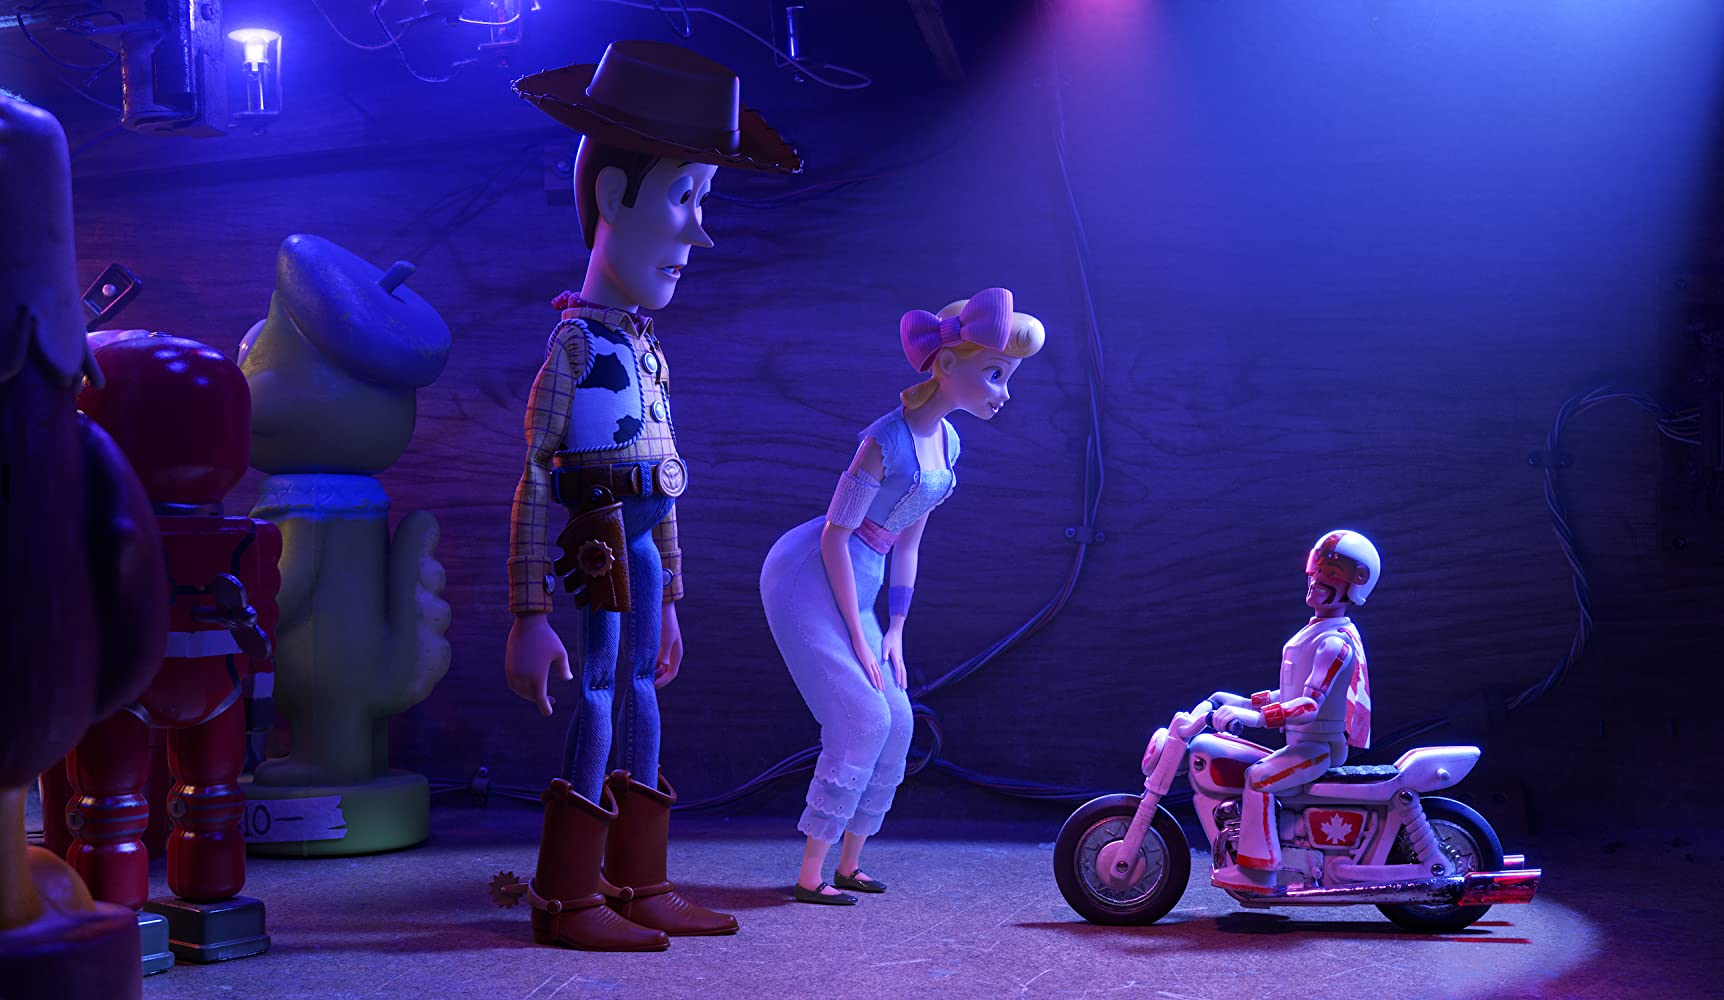 Tom Hanks, Keanu Reeves, and Annie Potts in Toy Story 4 (2019)